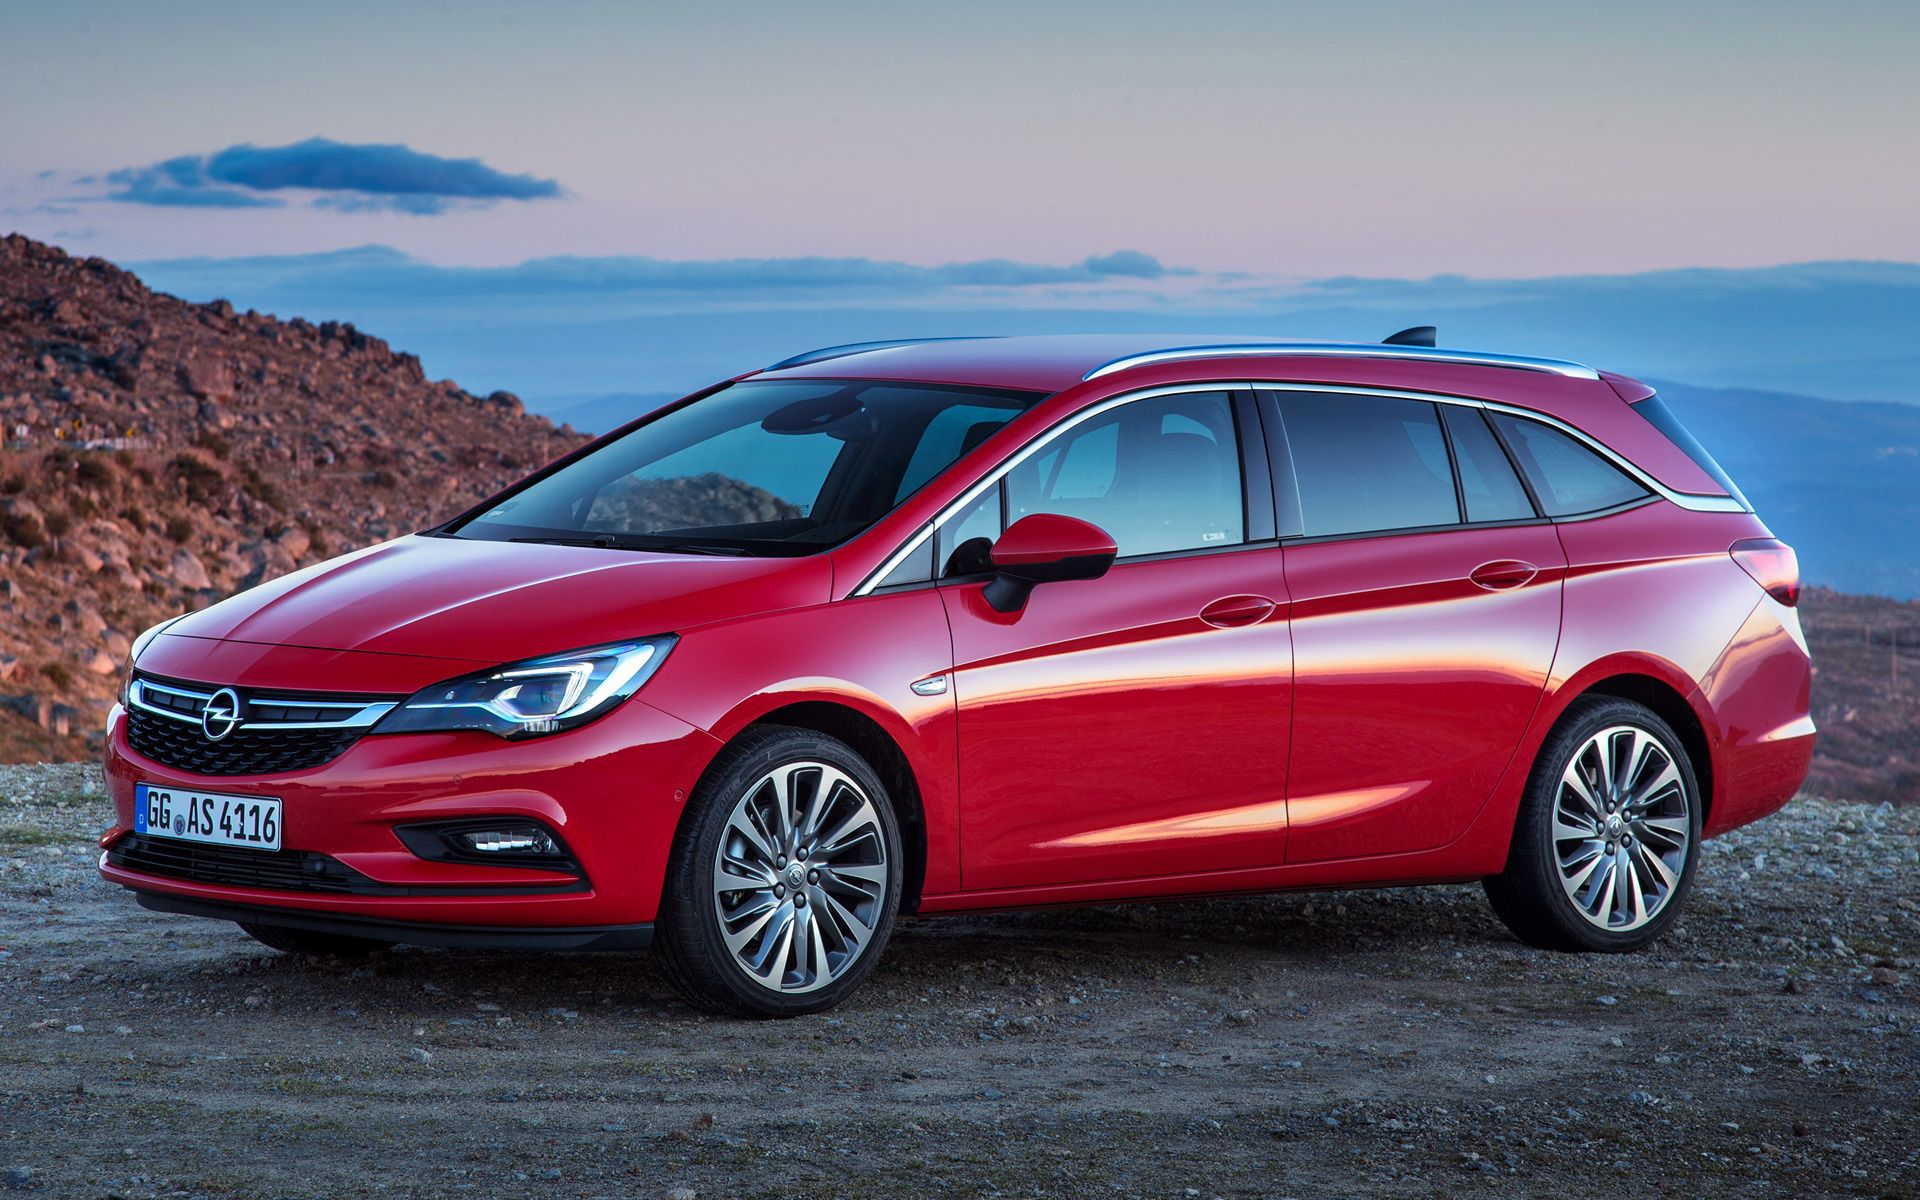 Opel Astra Sports Tourer (2016) Wallpapers and HD Images - Car Pixel